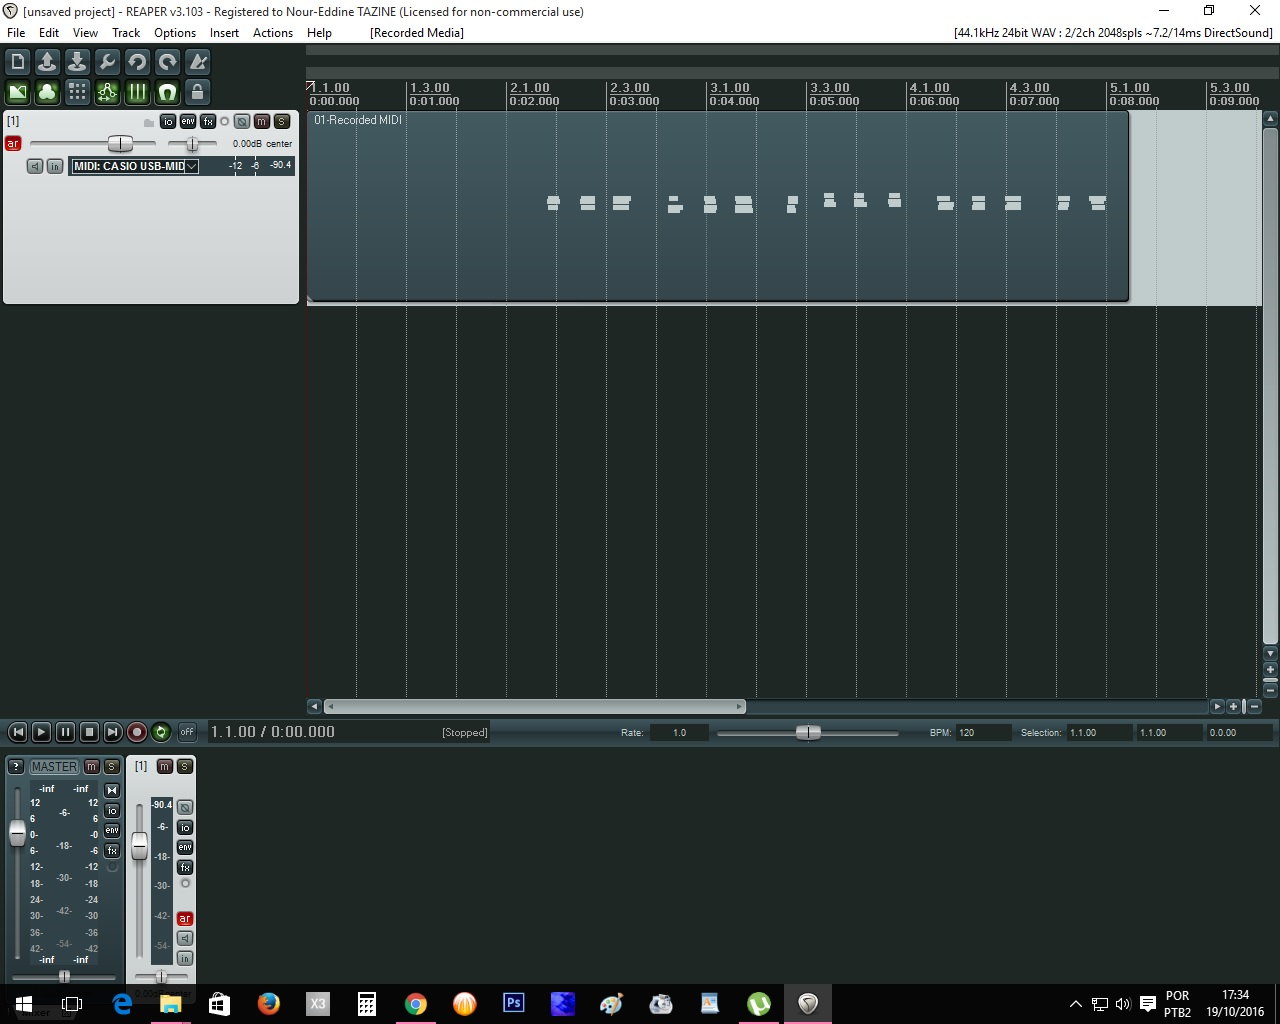 Using MIDI on the CTK 7200 with Reaper - WK-7500/7600 - CTK-7000